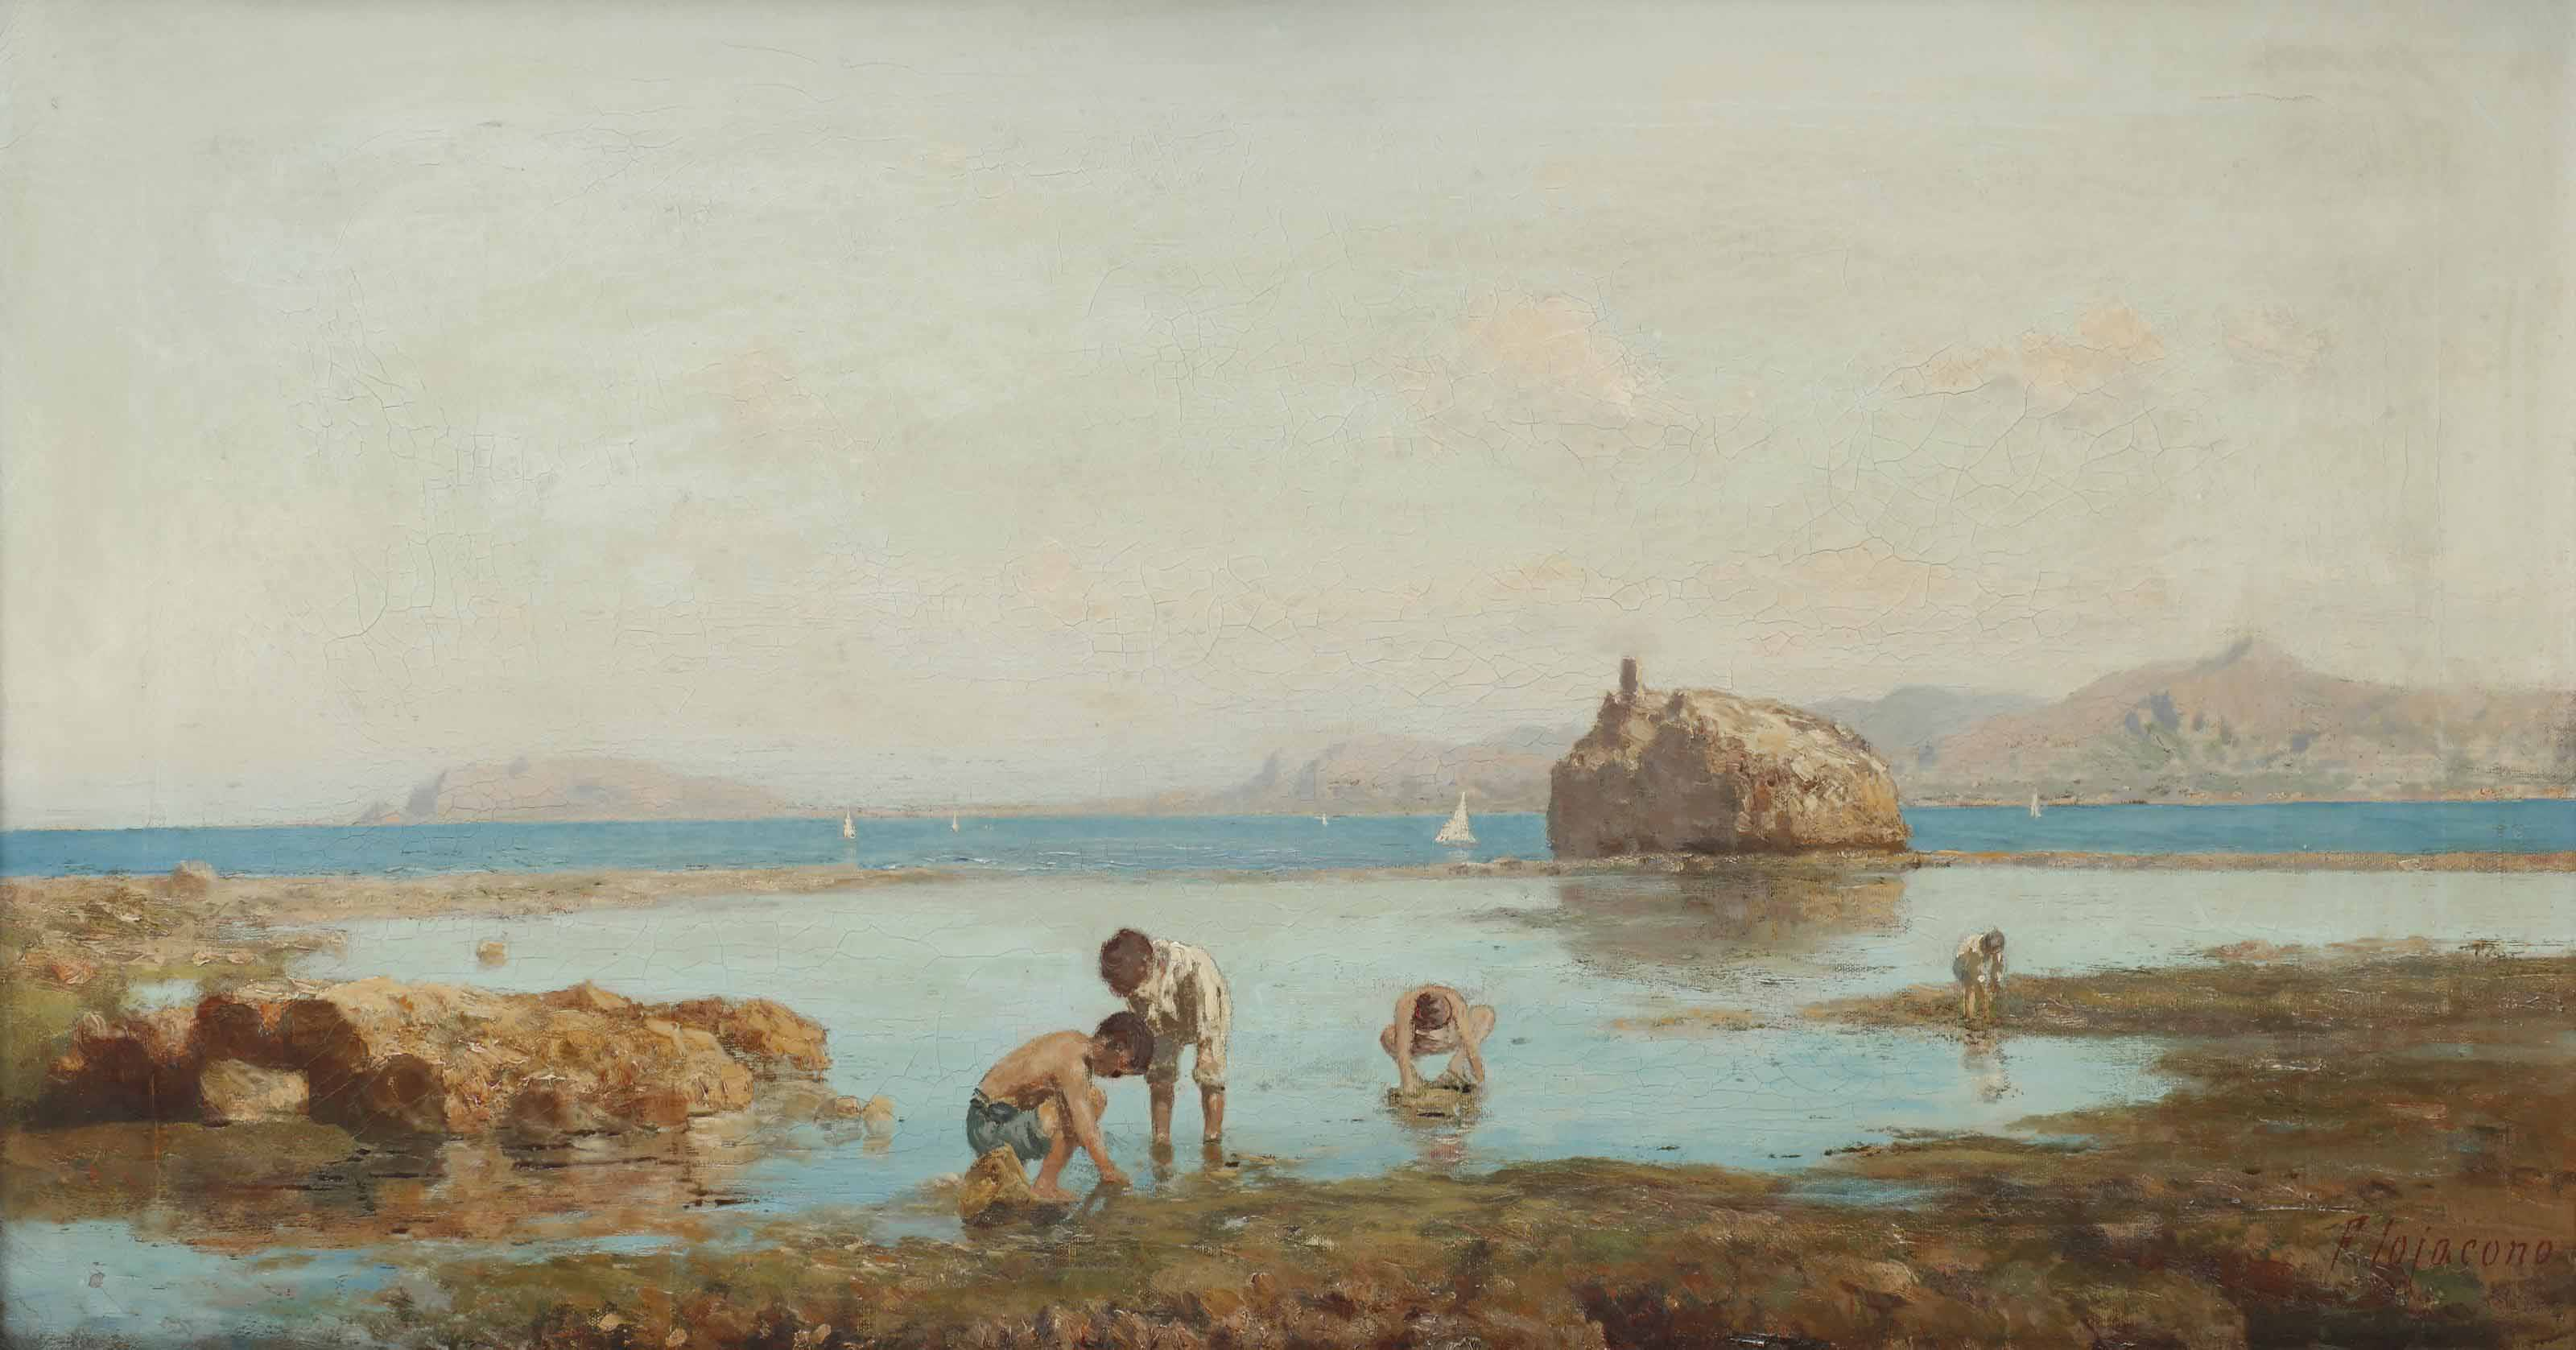 Children fishing in the bay of Palermo, Sicily